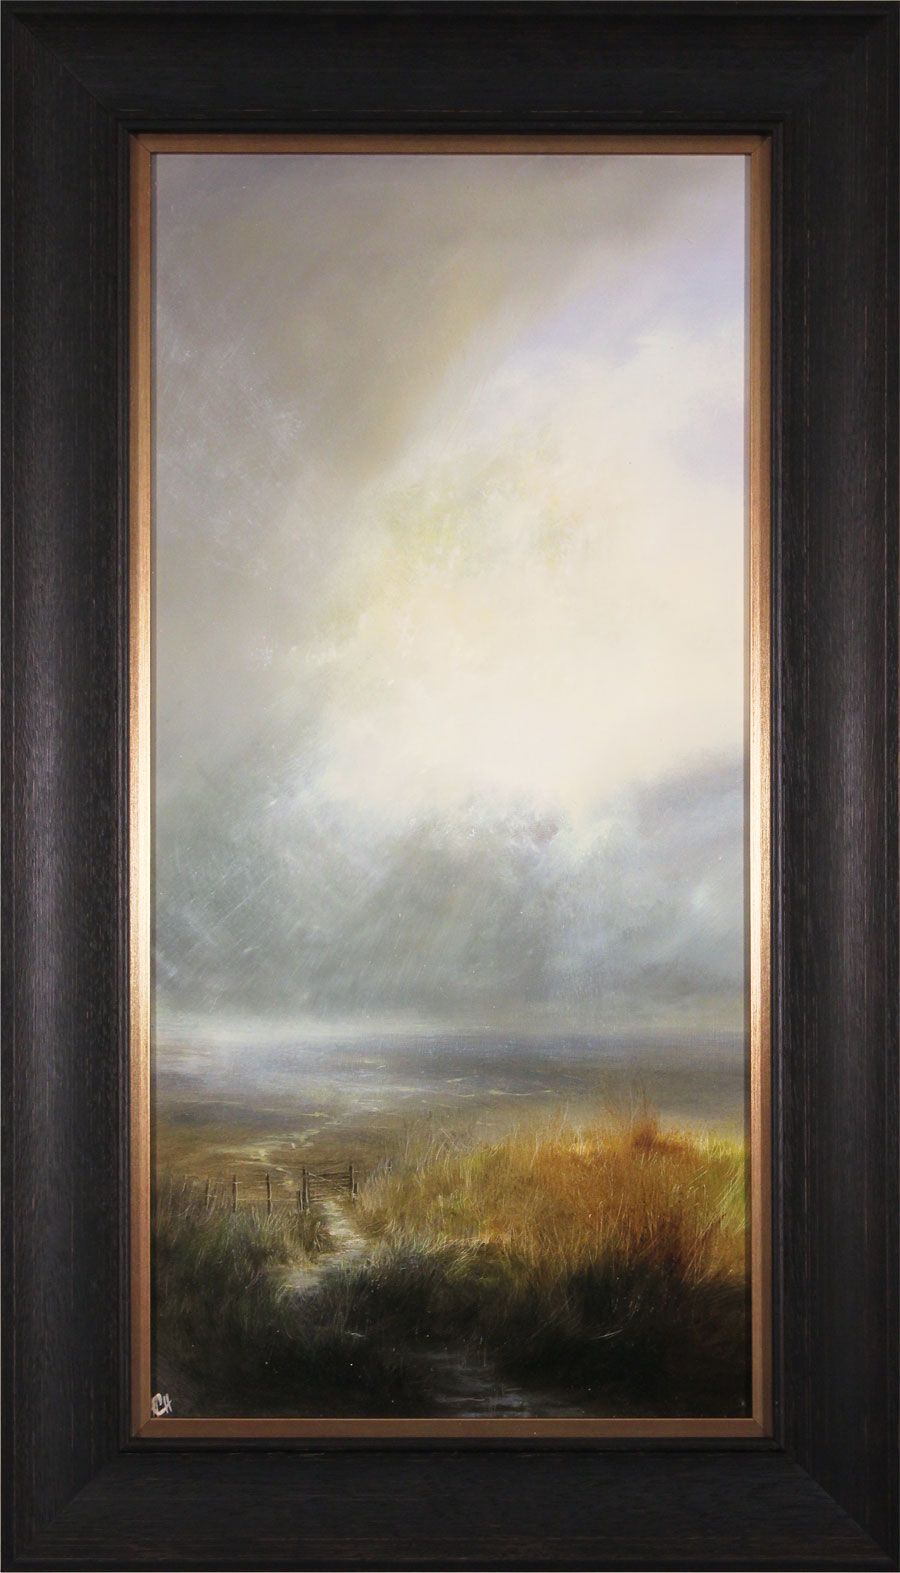 Clare Haley, Original oil painting on panel, Lightburst, click to enlarge